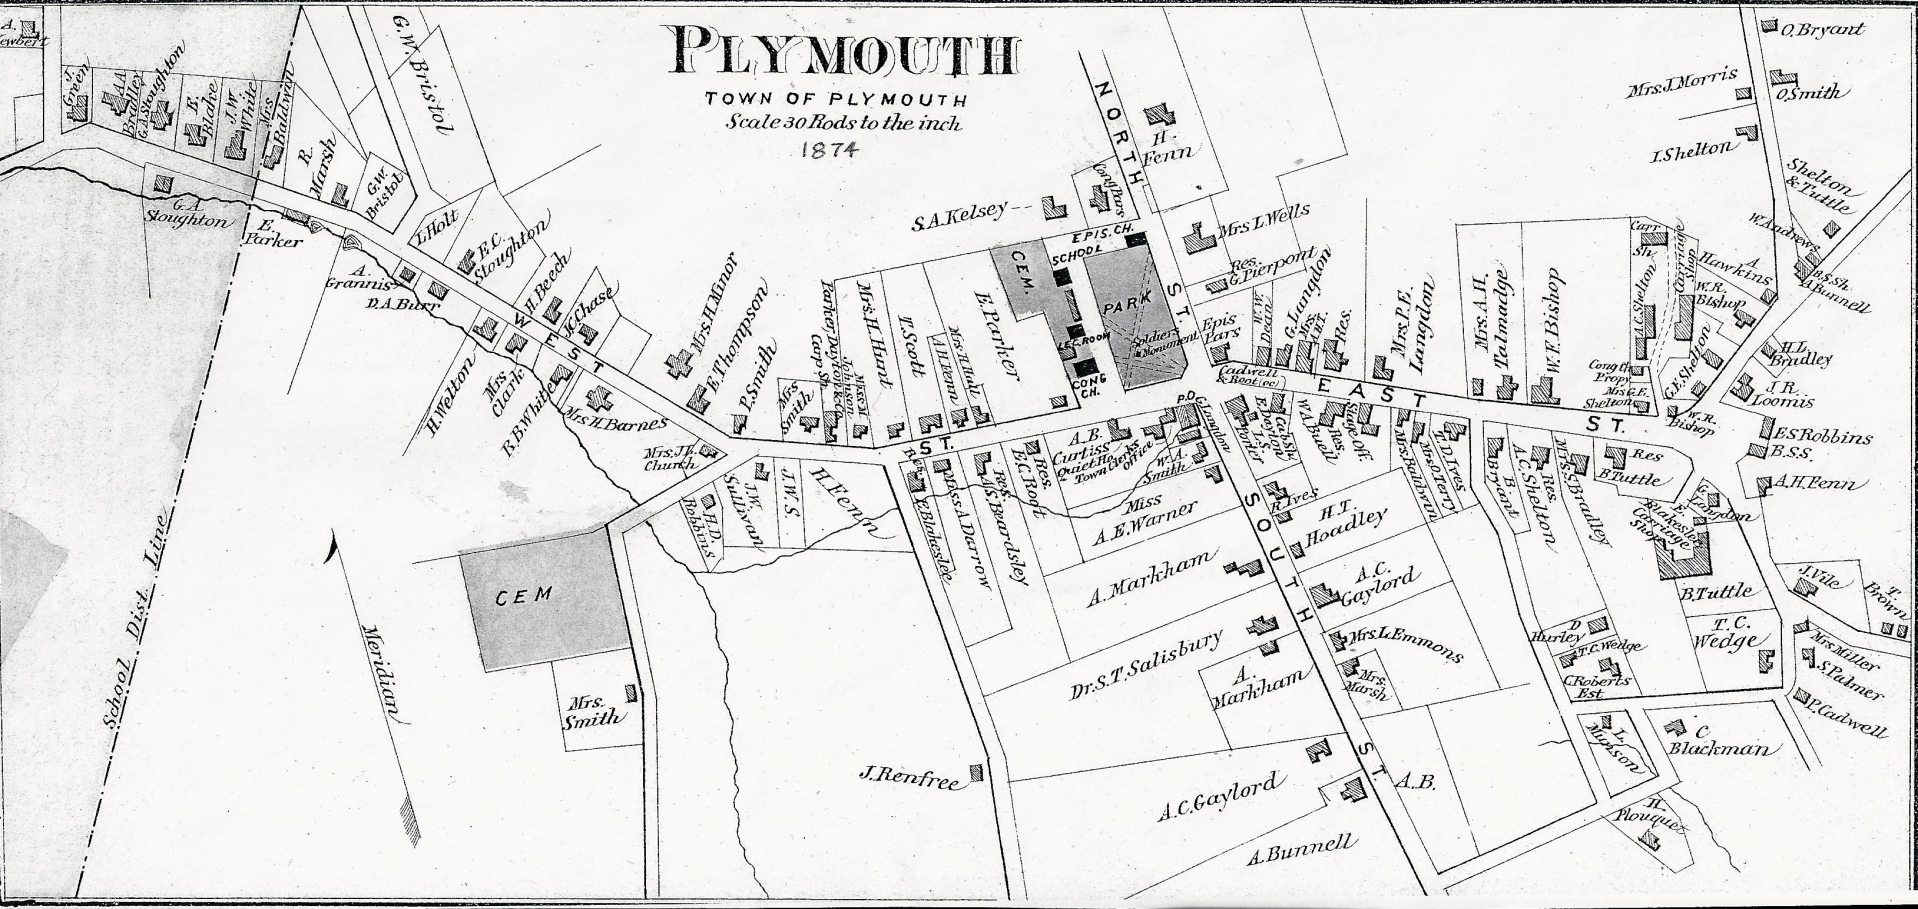 the battle of plymouth is a major The battle of plymouth, april 17-20,1864, was the last major confederate victory of the civil war and the 3rd largest battle fought in north carolina it is considered by historians to be the cleanest, most competently fought confederate victory on north carolina soil.